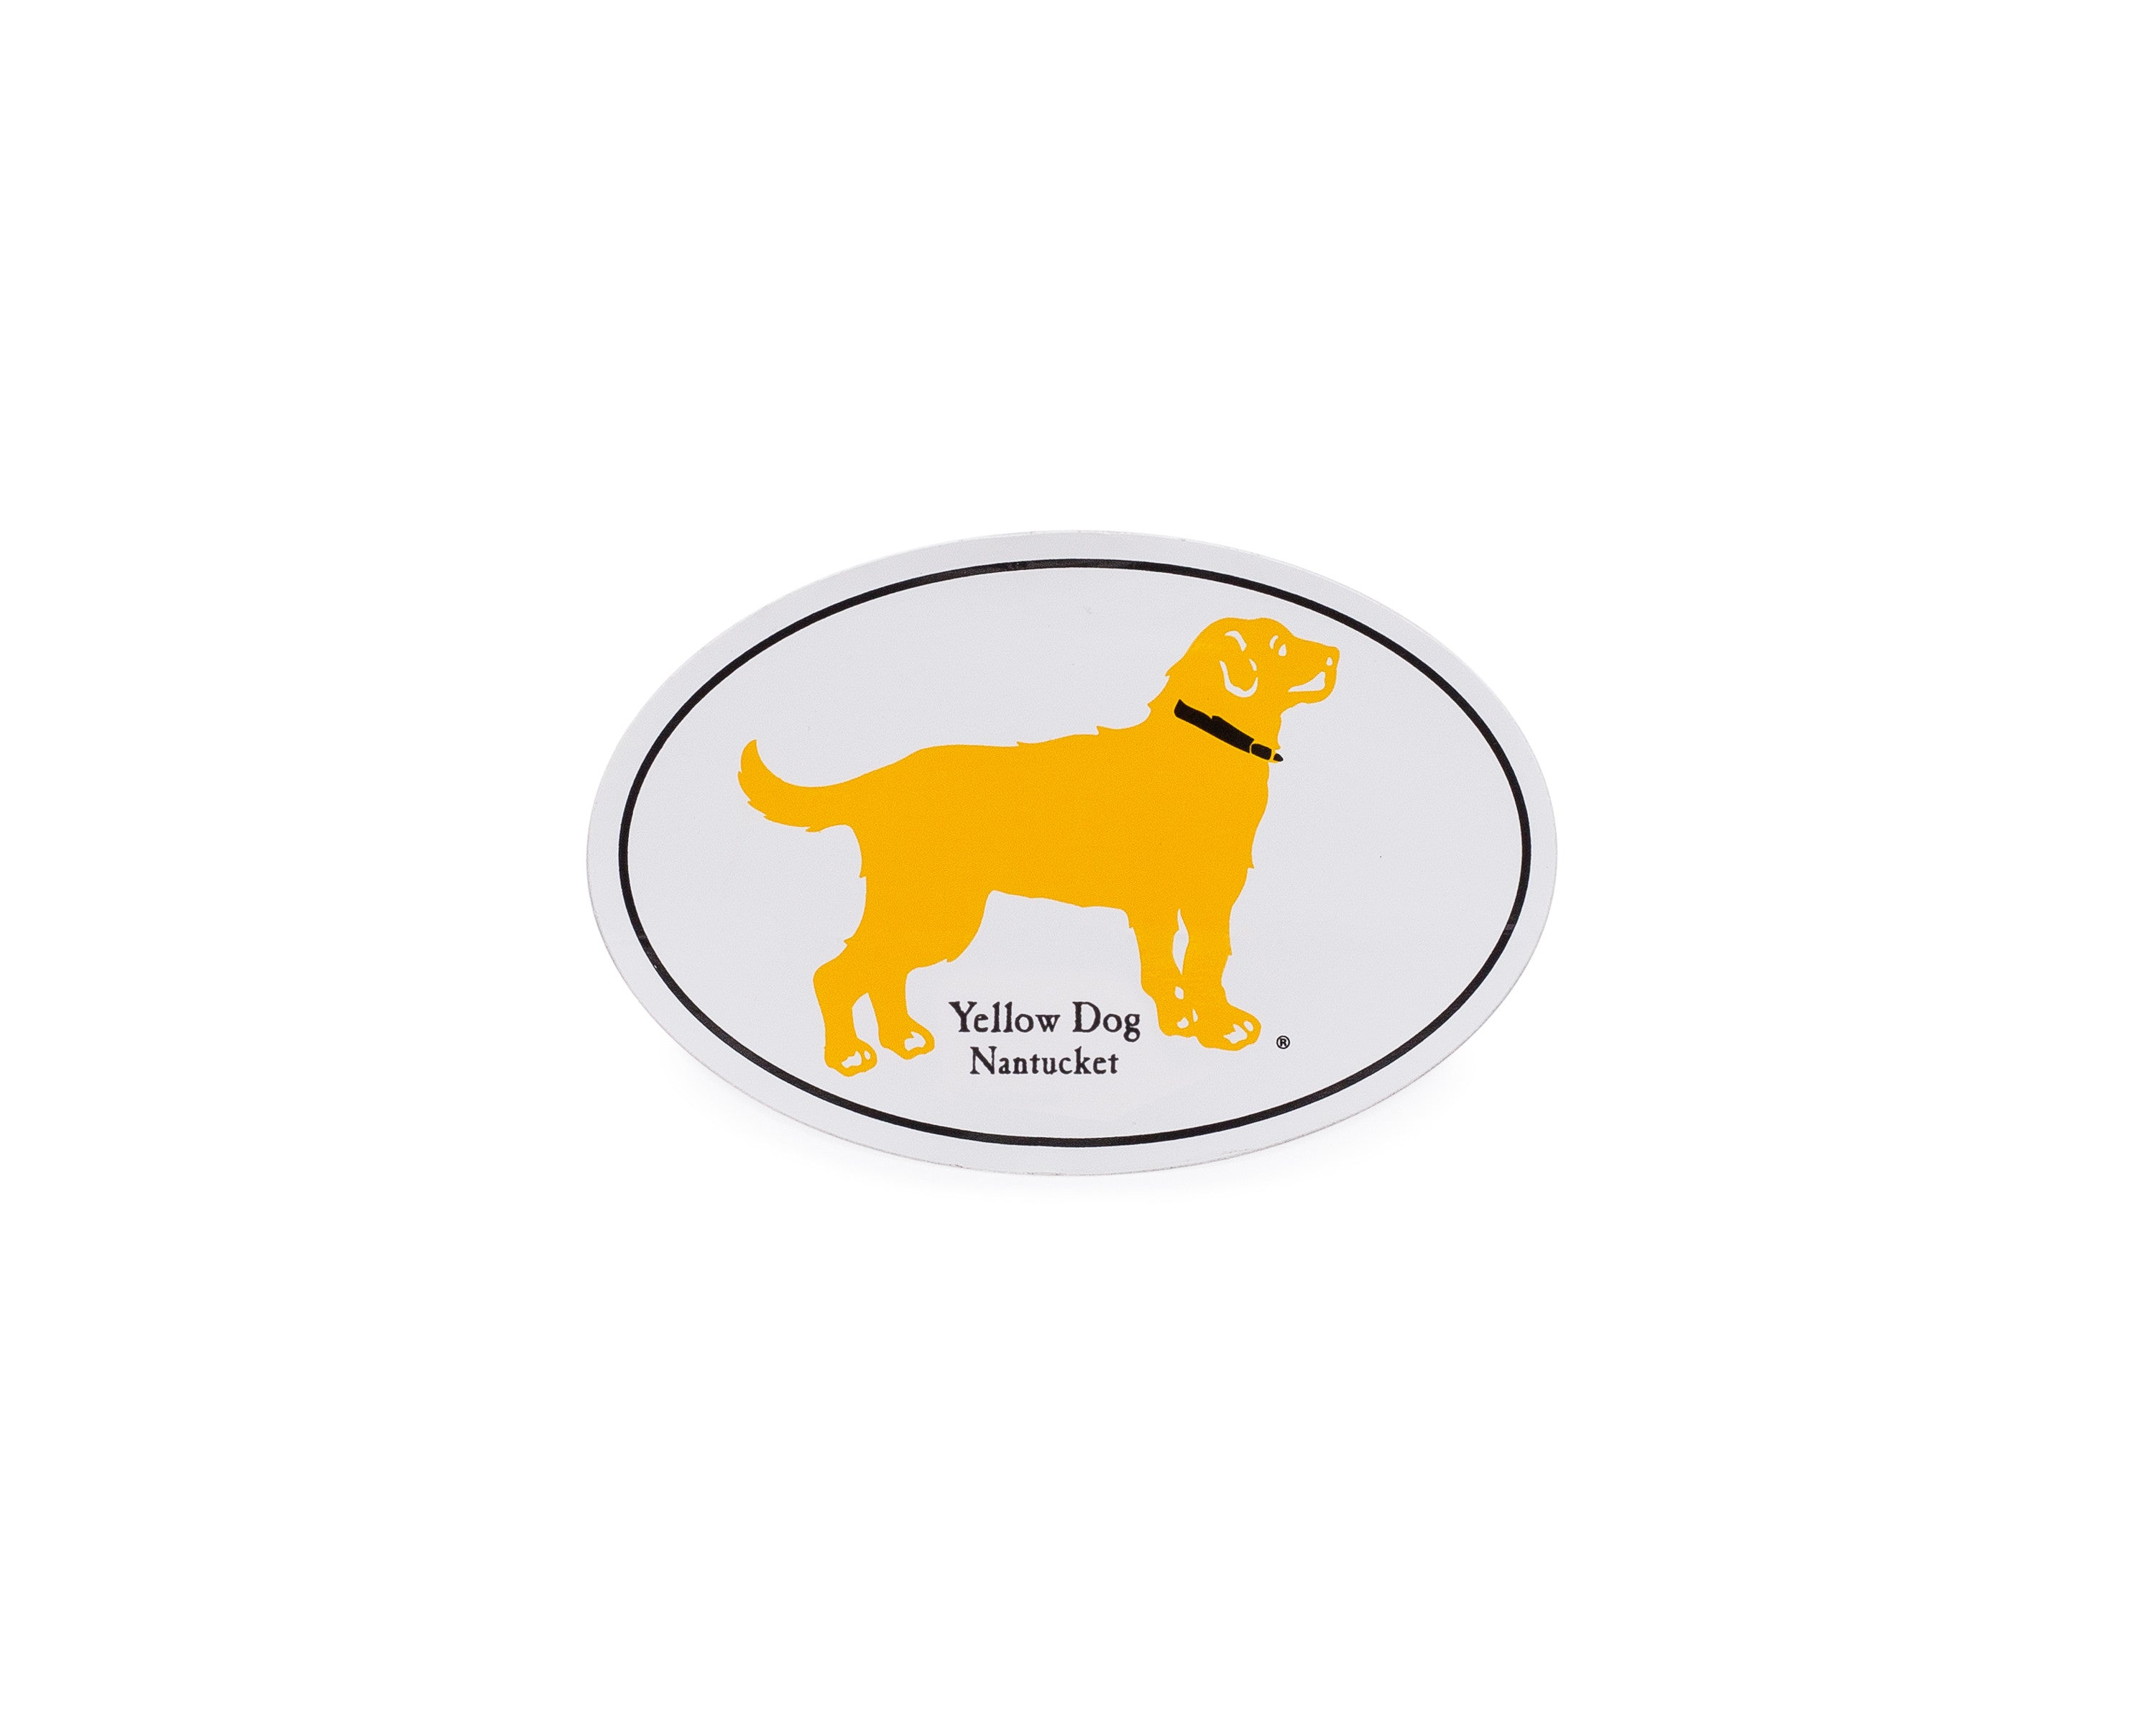 Free Yellow Dog® Nantucket Sticker Preppy Golden Retriever